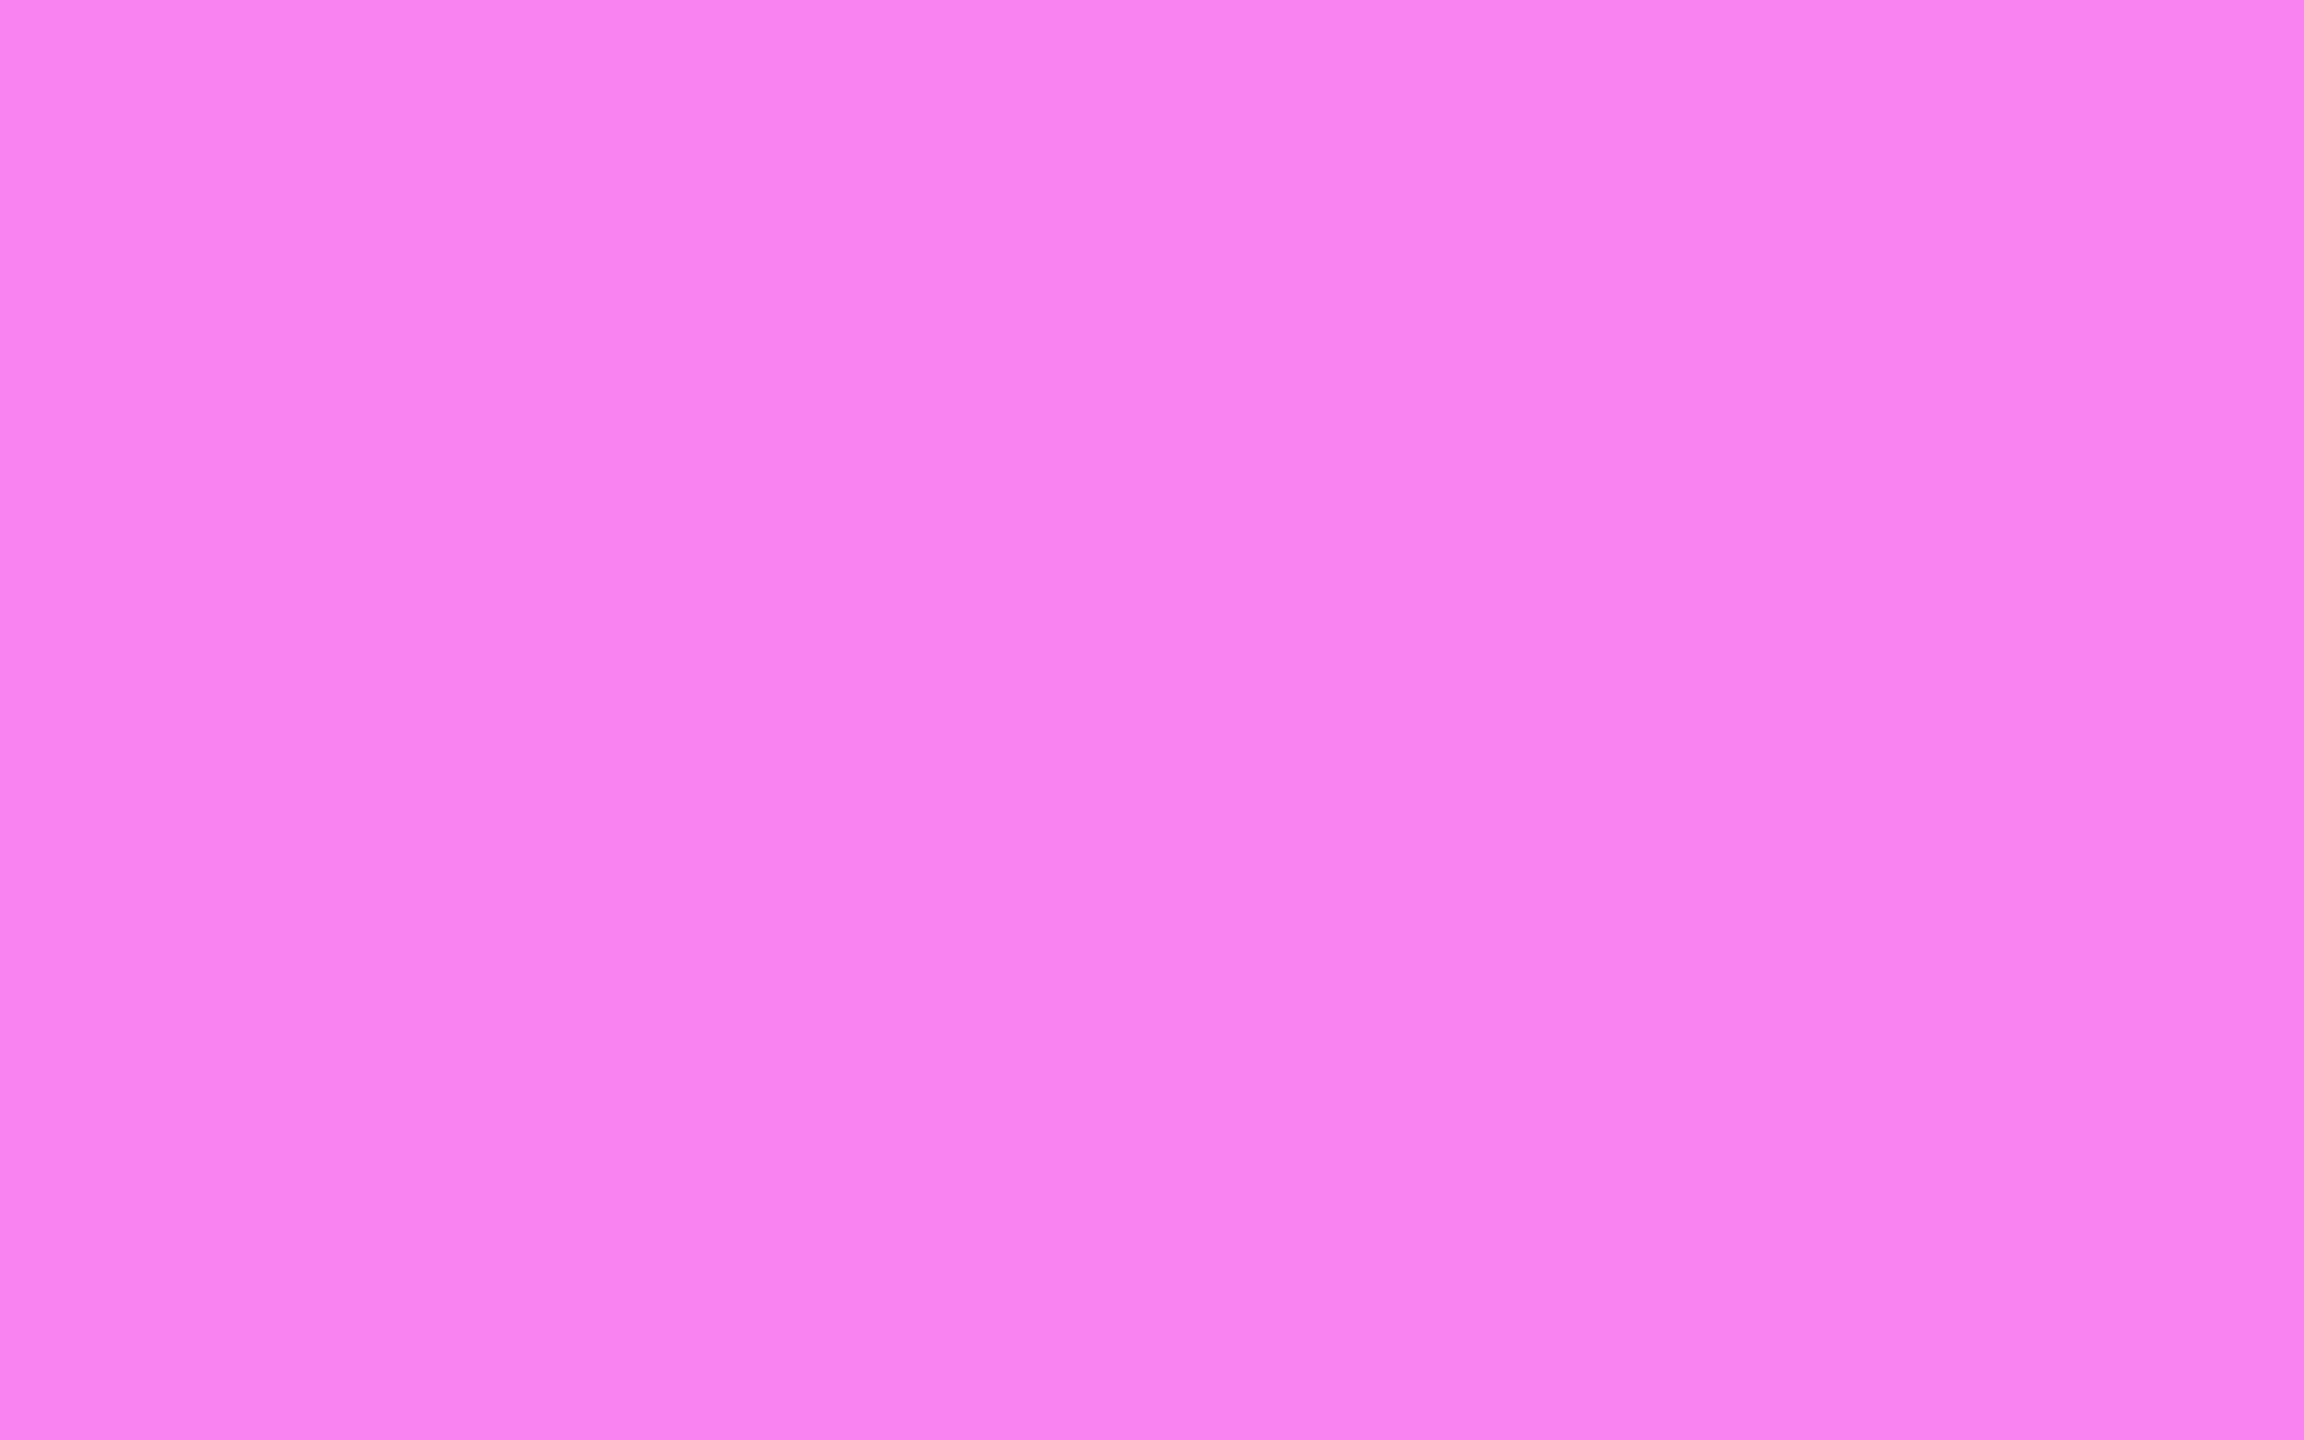 2304x1440 Light Fuchsia Pink Solid Color Background